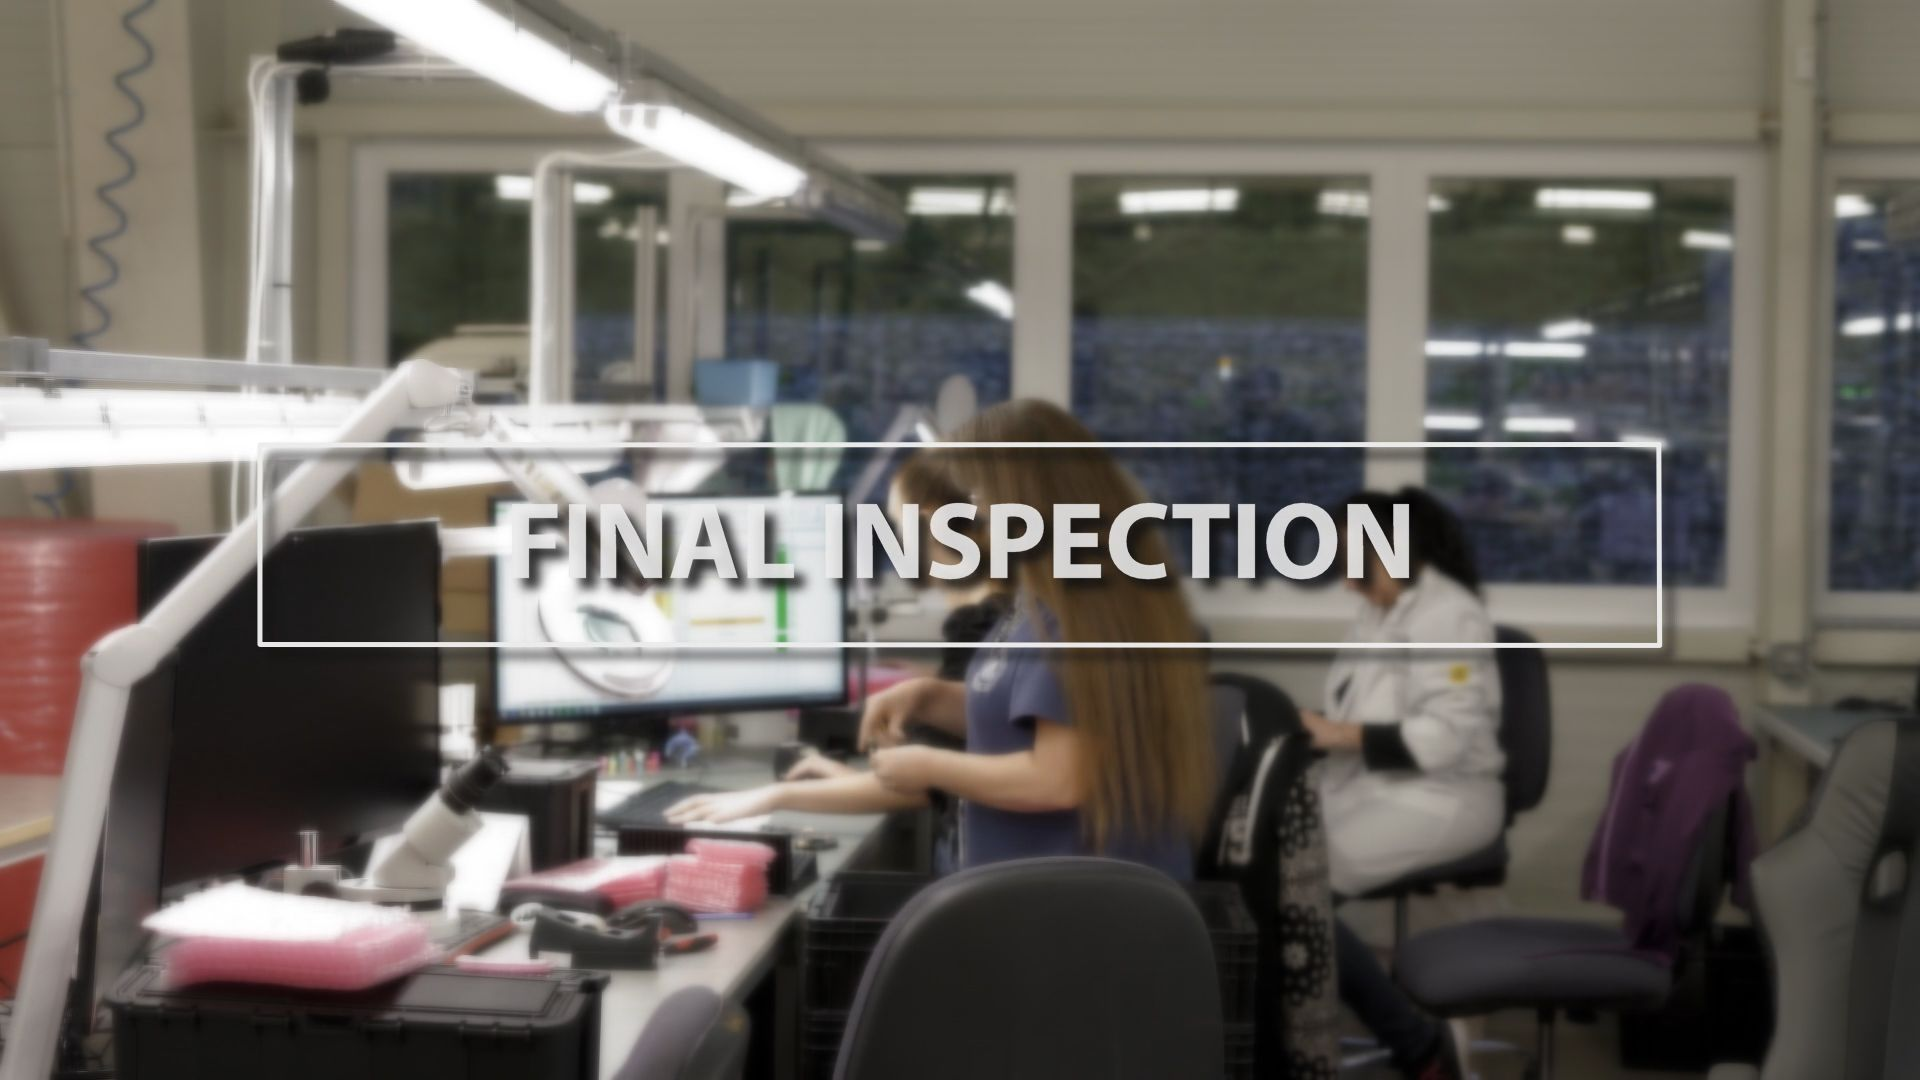 Technology Thursday: Final Inspection